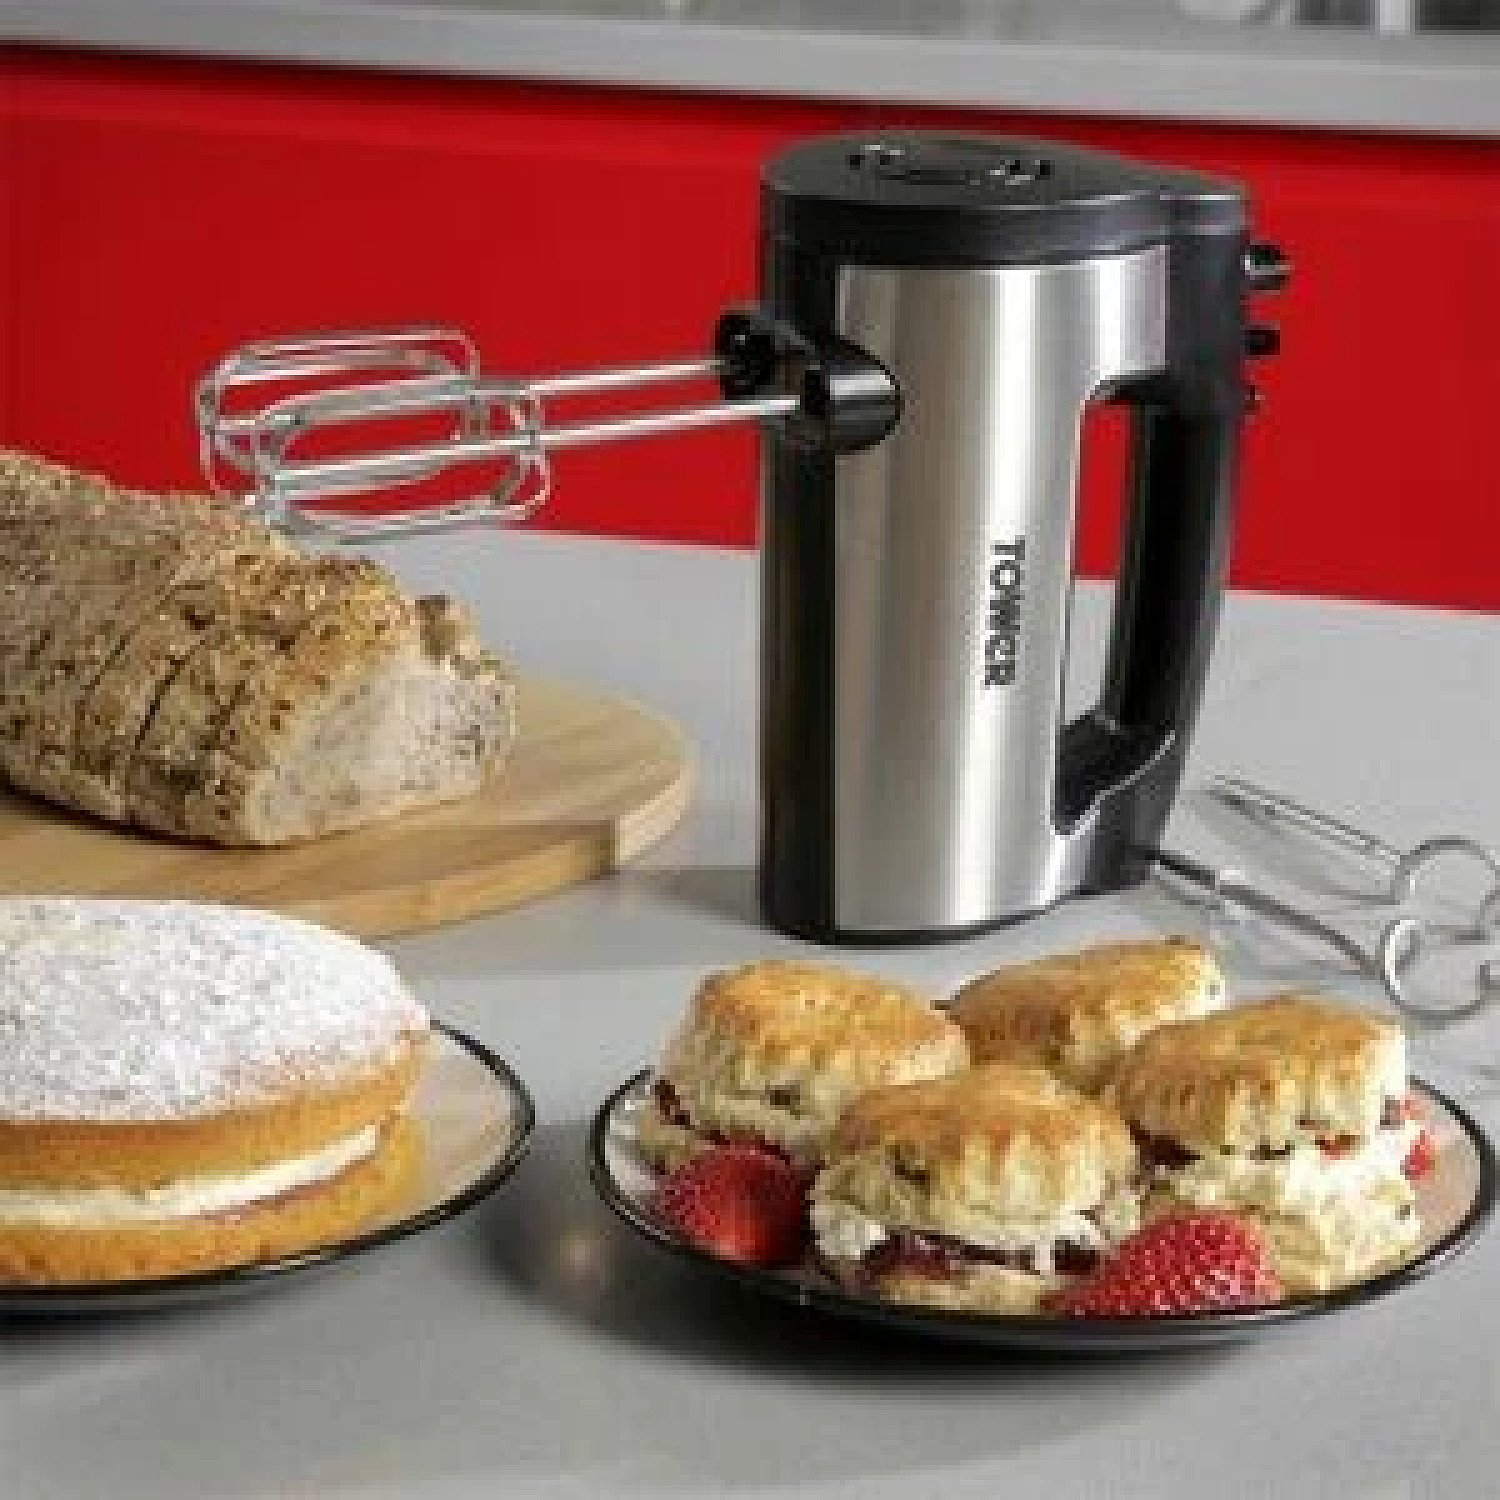 Tower Stainless Steel Electric Food Hand Mixer Mix Baking Whisk Blender Beater 6 Speed Free Postage